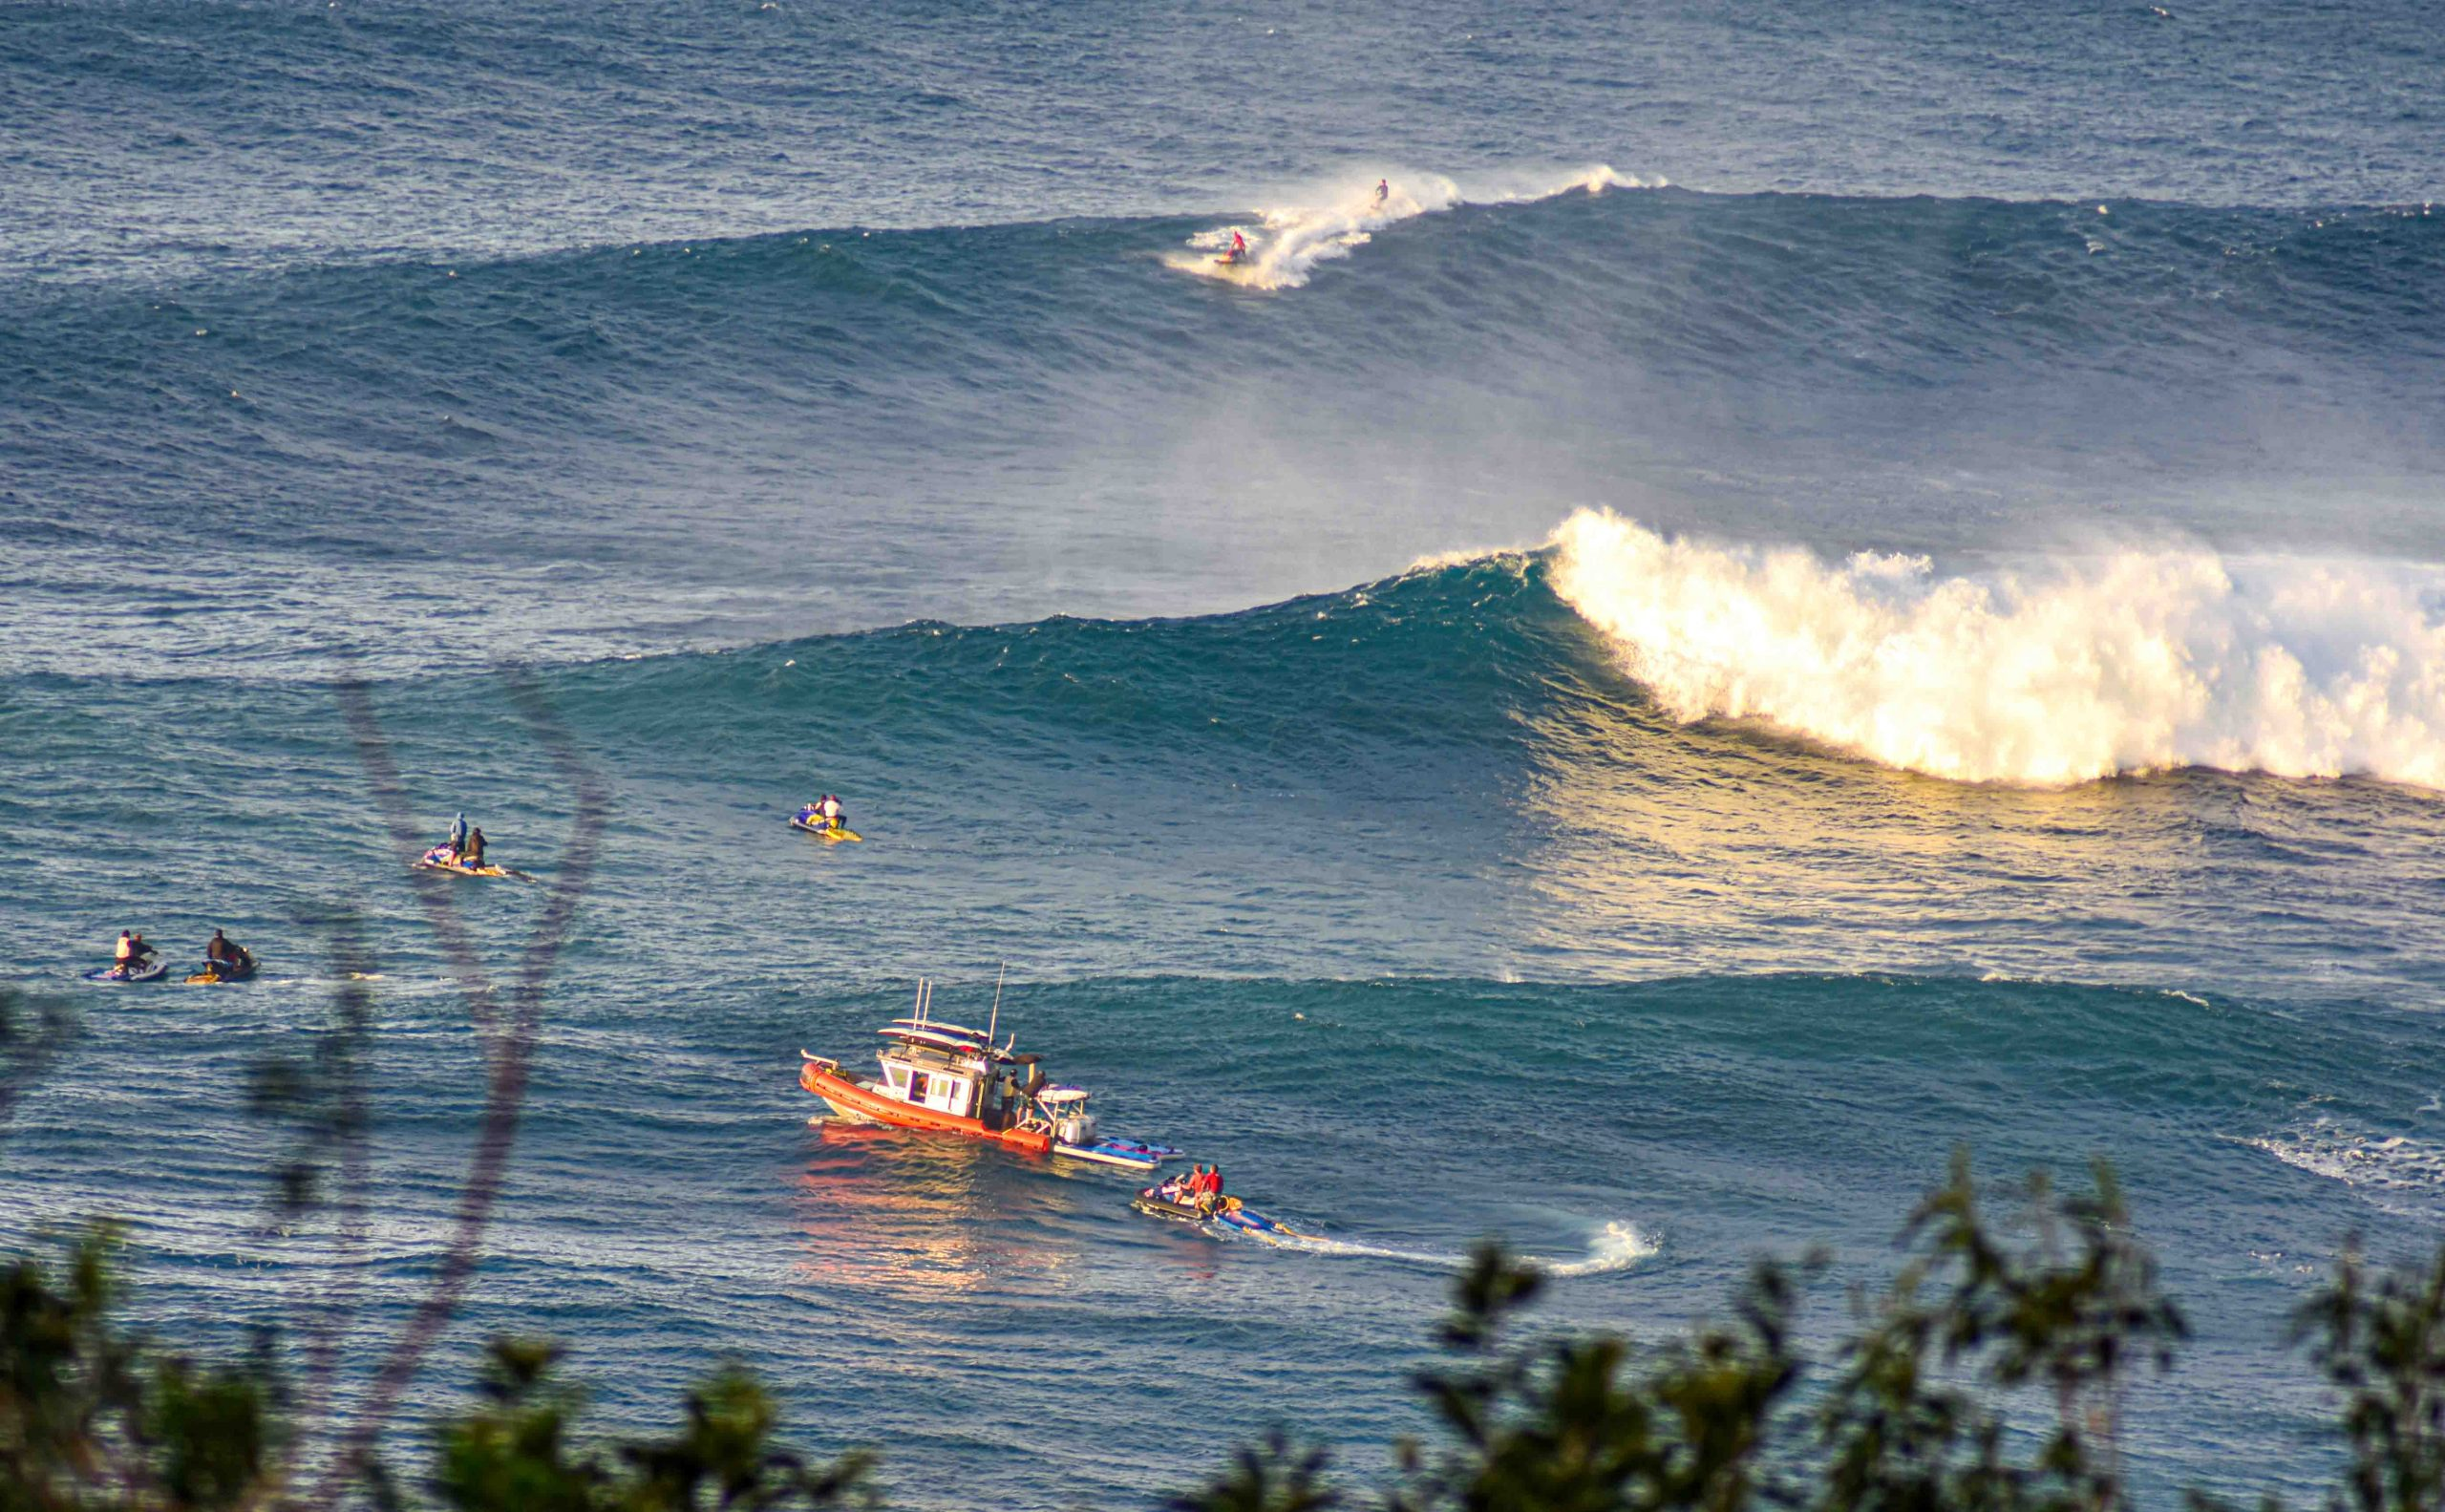 Big Surf is Up: Jaws Draws Big Wave Riders and Spectators to Ooh and Aah